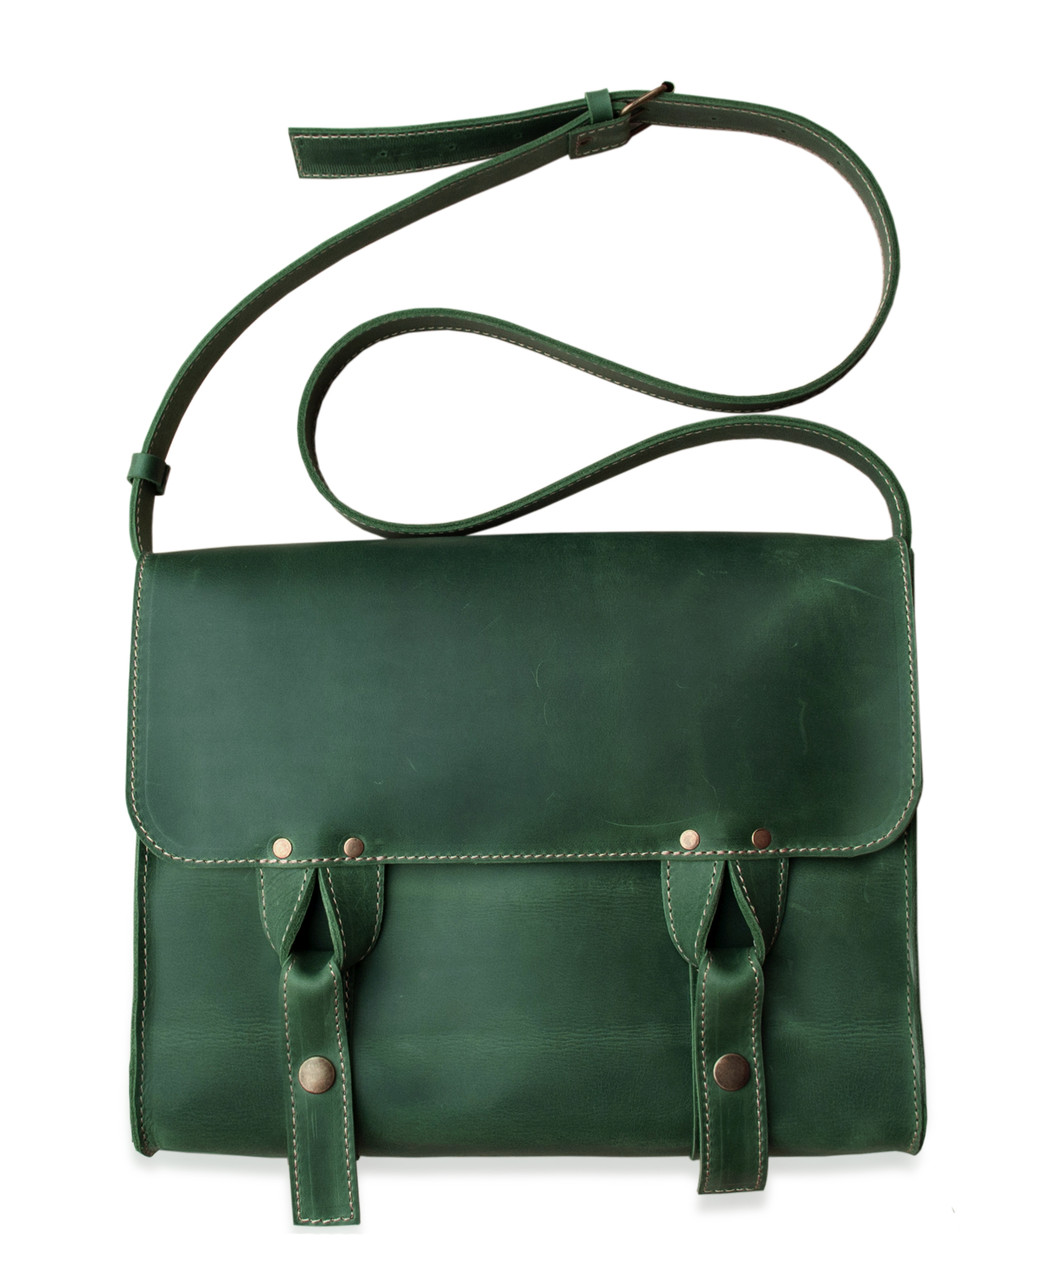 Satchel bag green, мессенджер зелёная